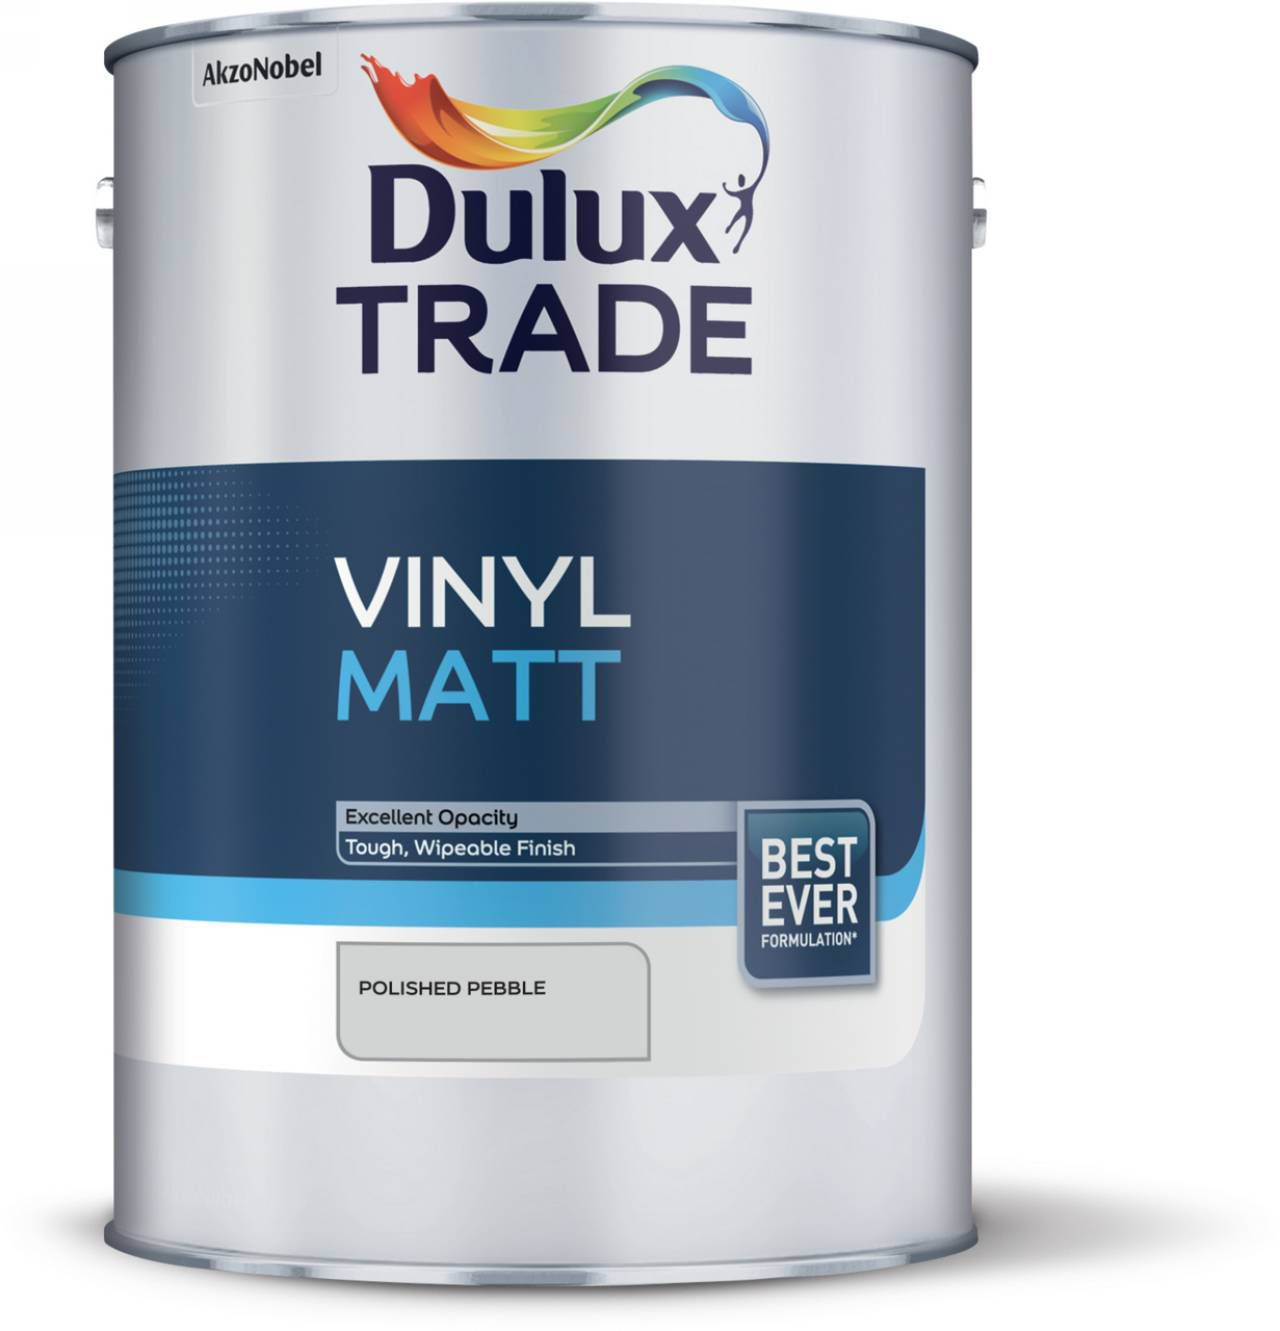 Dulux Trade Polished Pebble Matt Vinyl Paint 5l